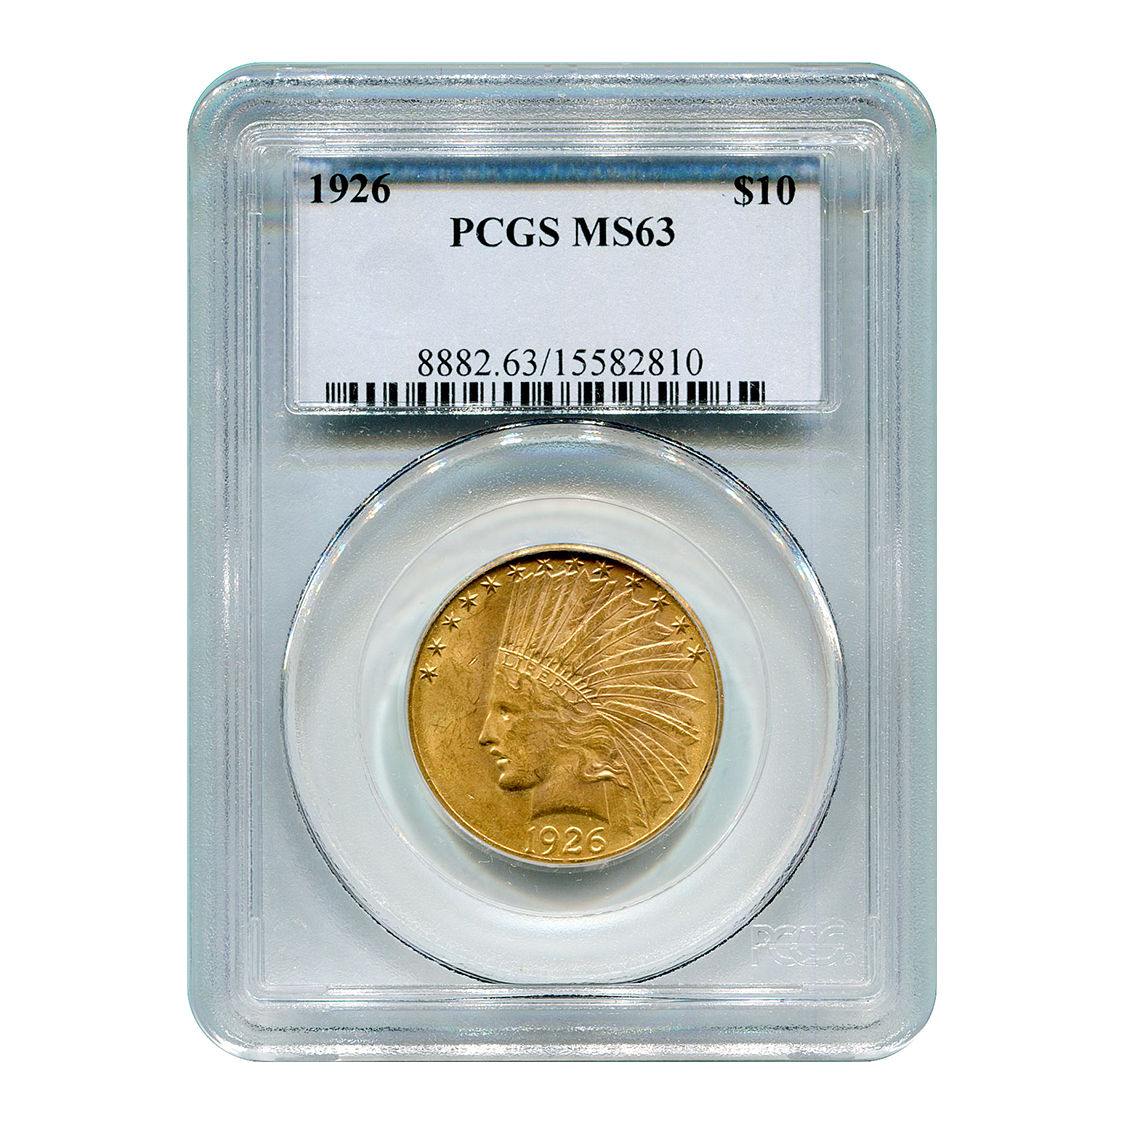 Certified US Gold $10 Indian 1926 MS63 PCGS